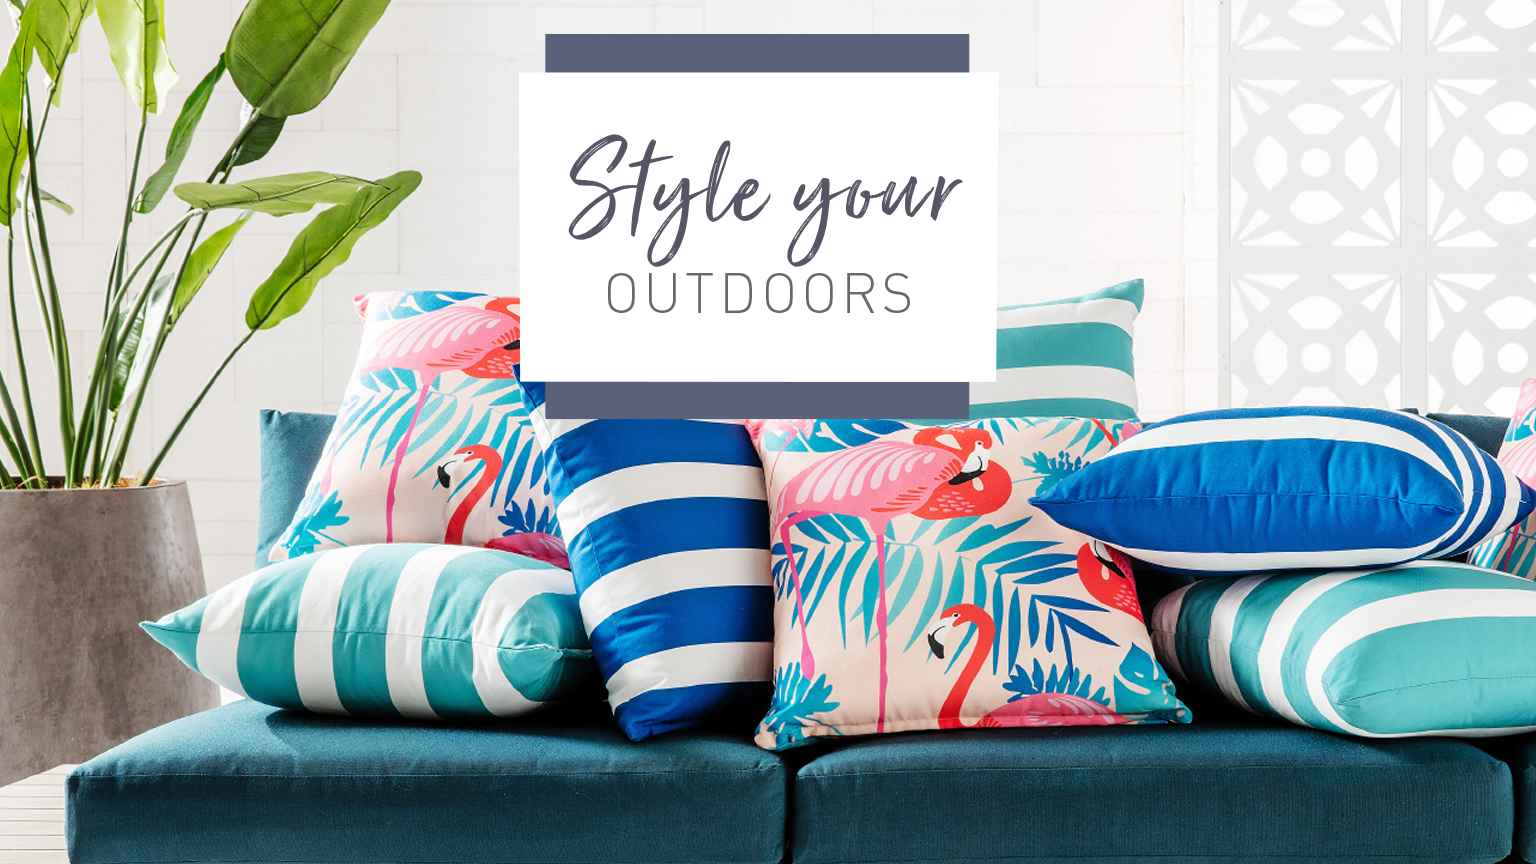 Style your outdoors